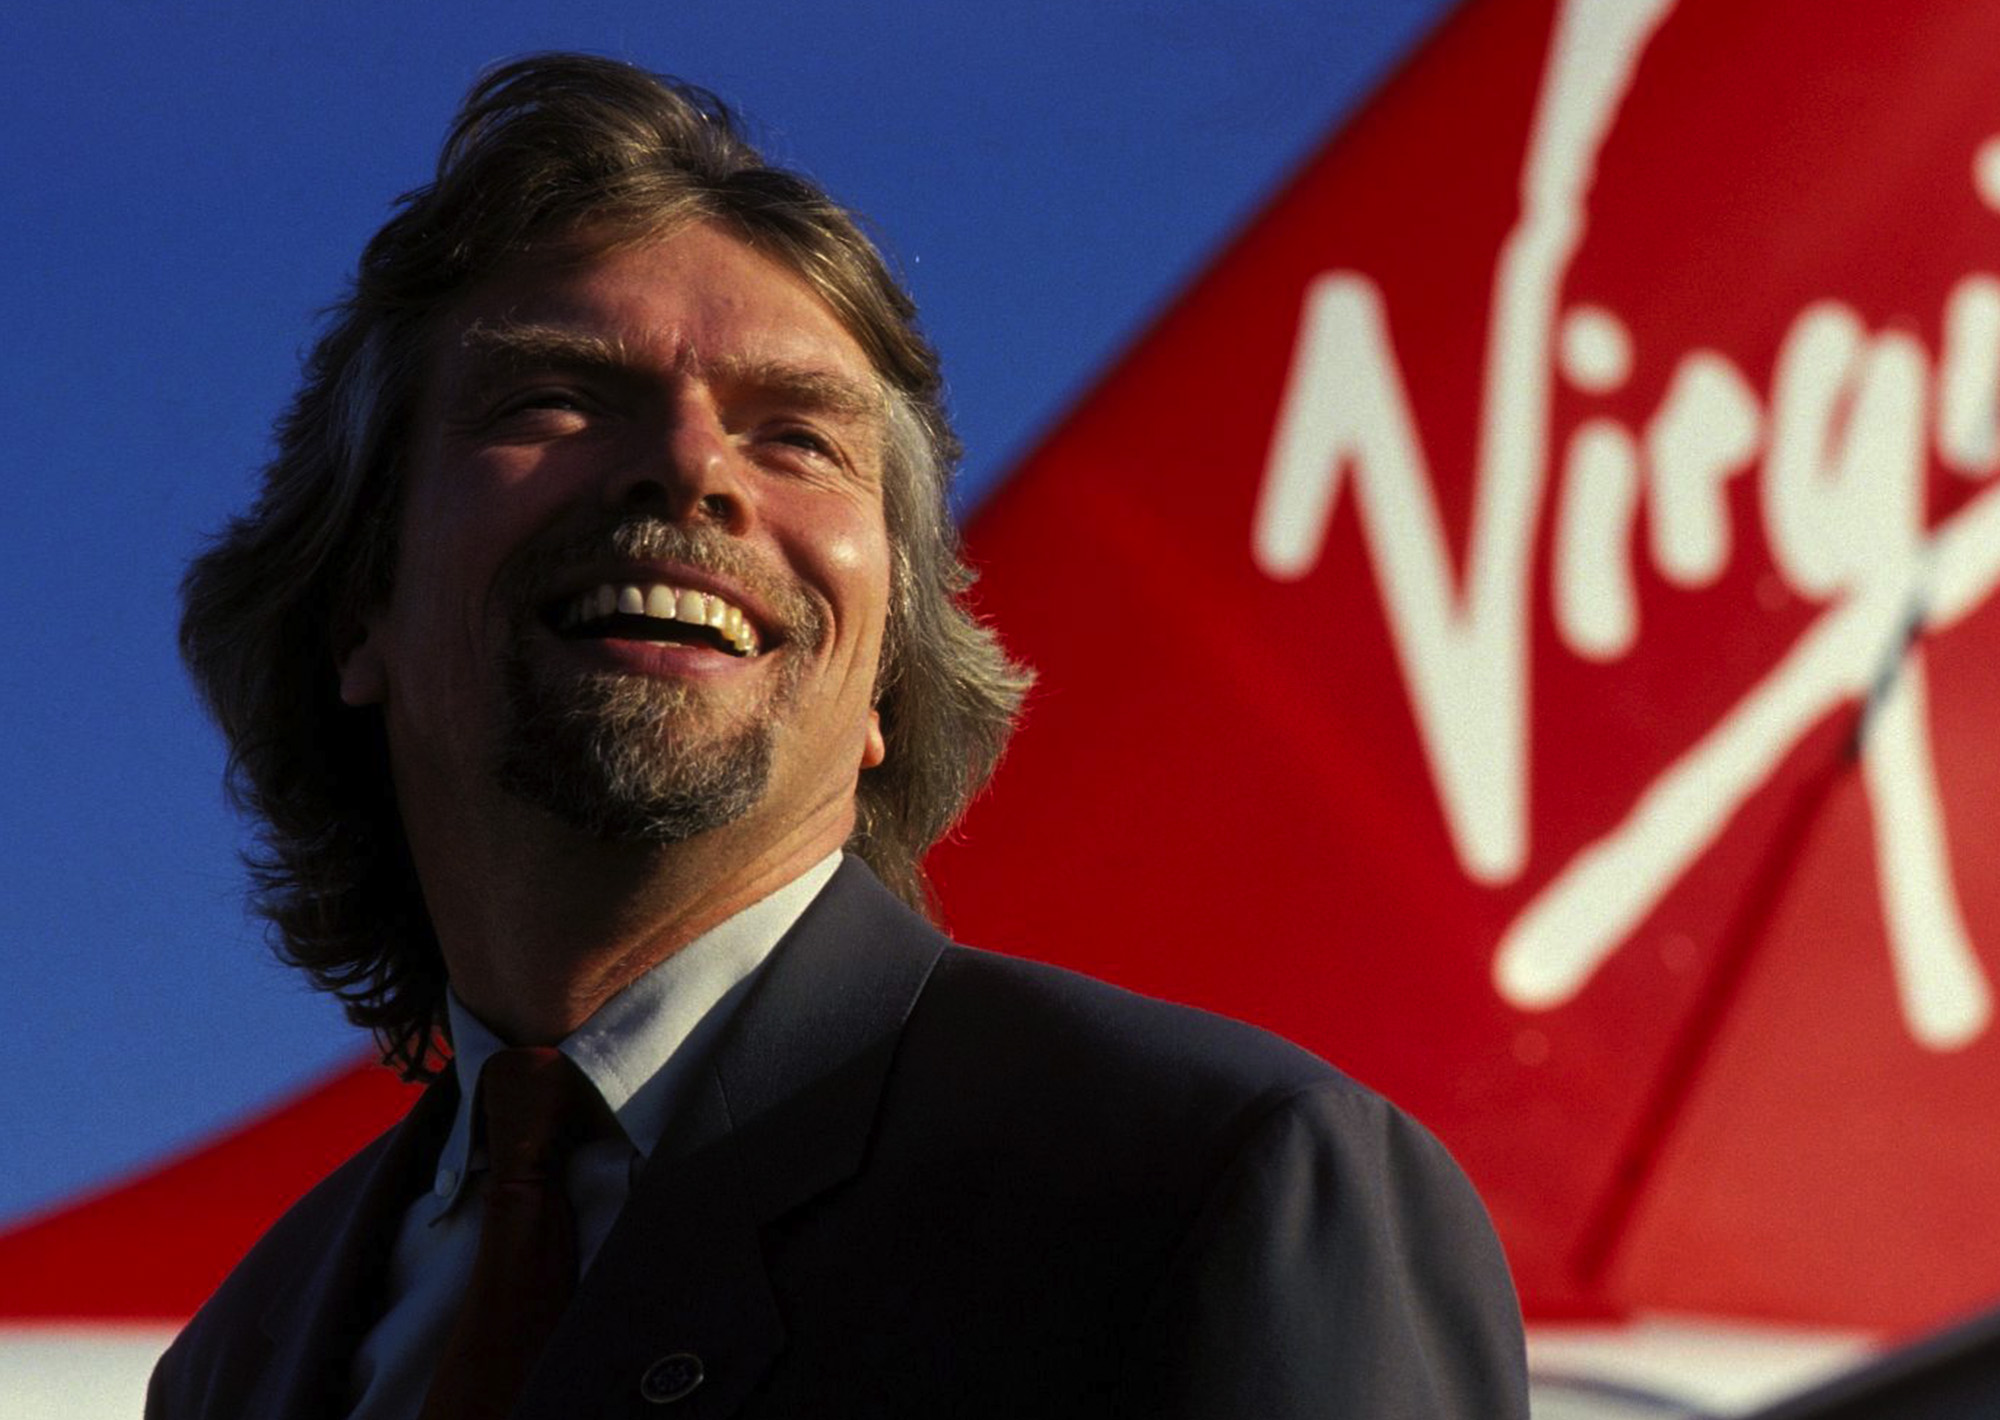 Richard Branson (CNBC.com)